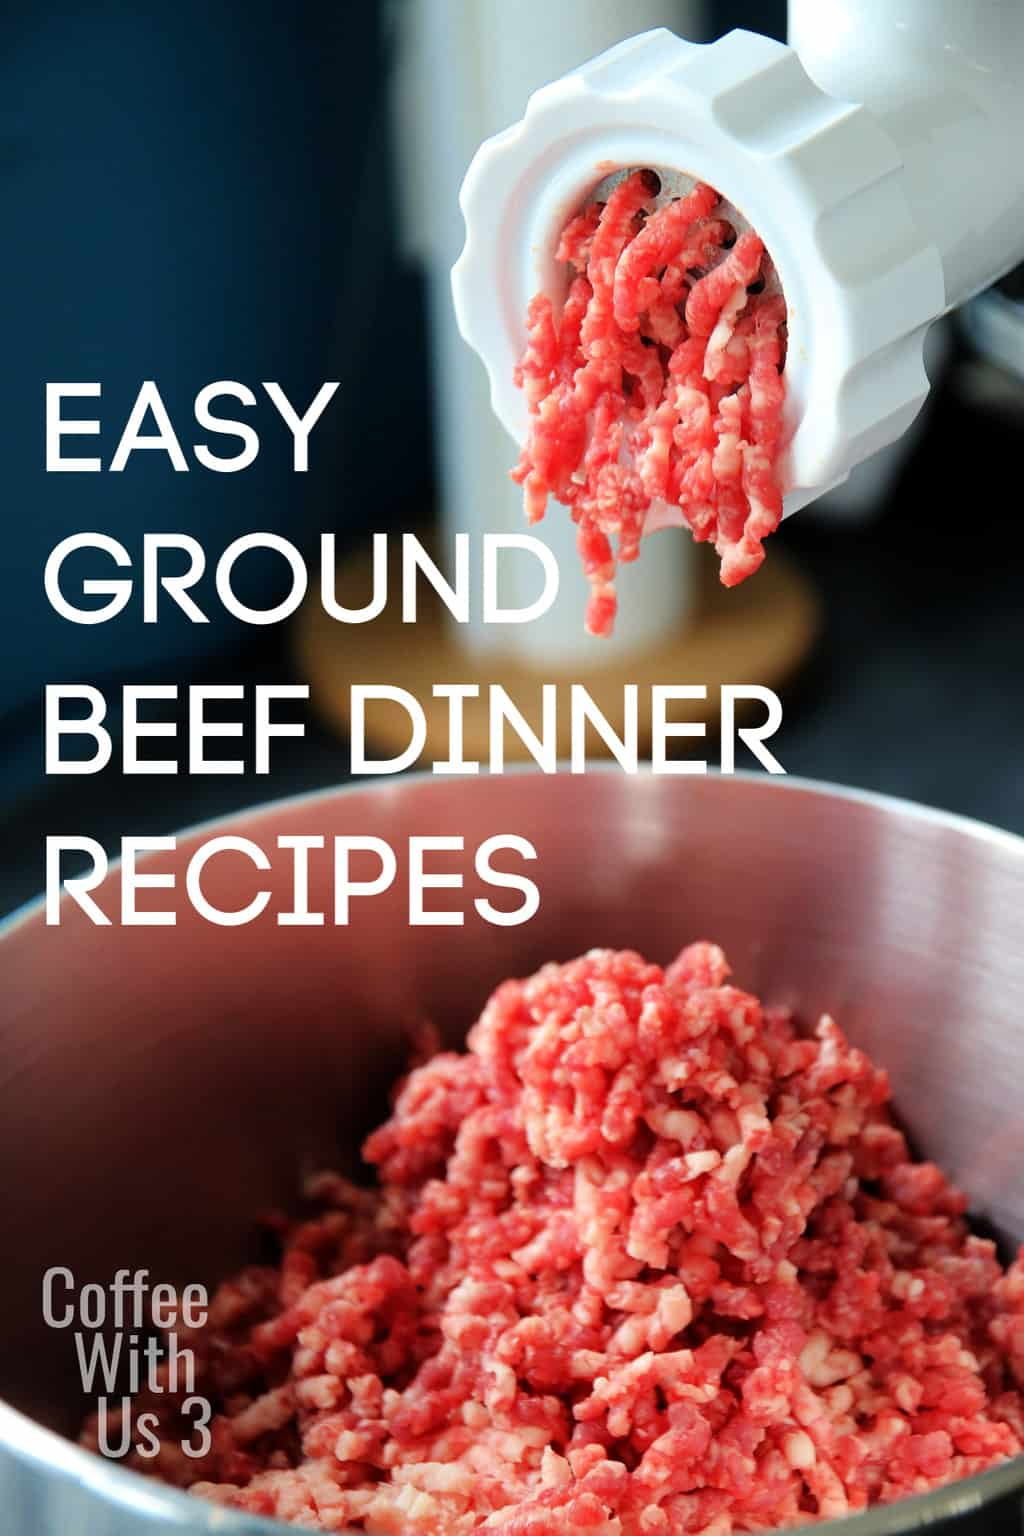 Ground beef is one of the easiest meats to cook with.  This makes it the perfect meat for the nights when you're running behind on making dinner.